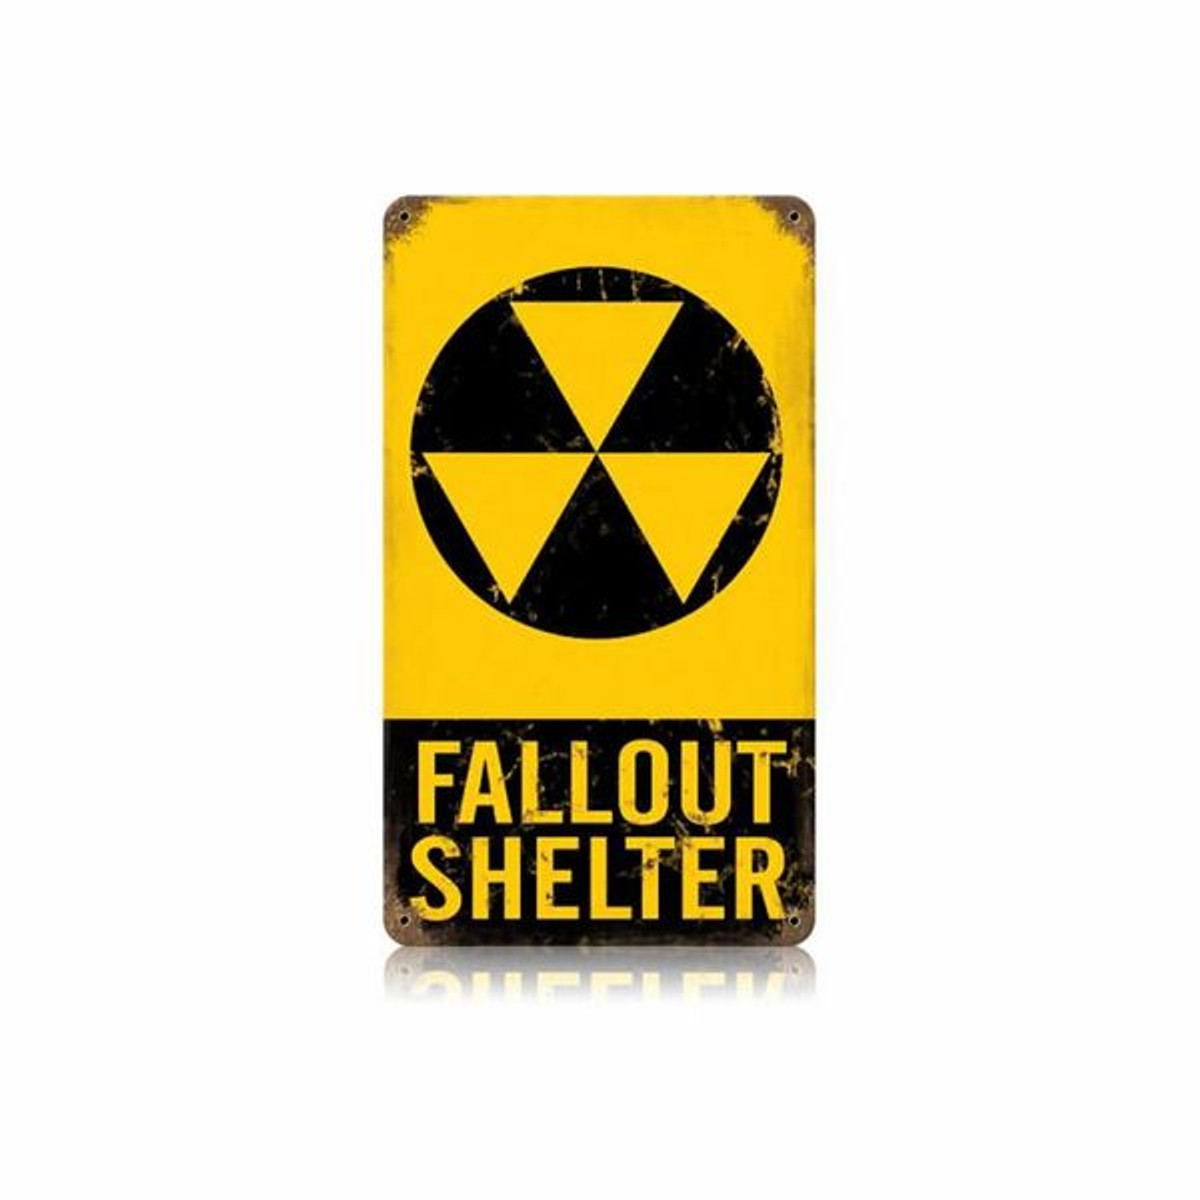 """Fallout Shelter"" Metal Sign. Measures 8"" X 14"""